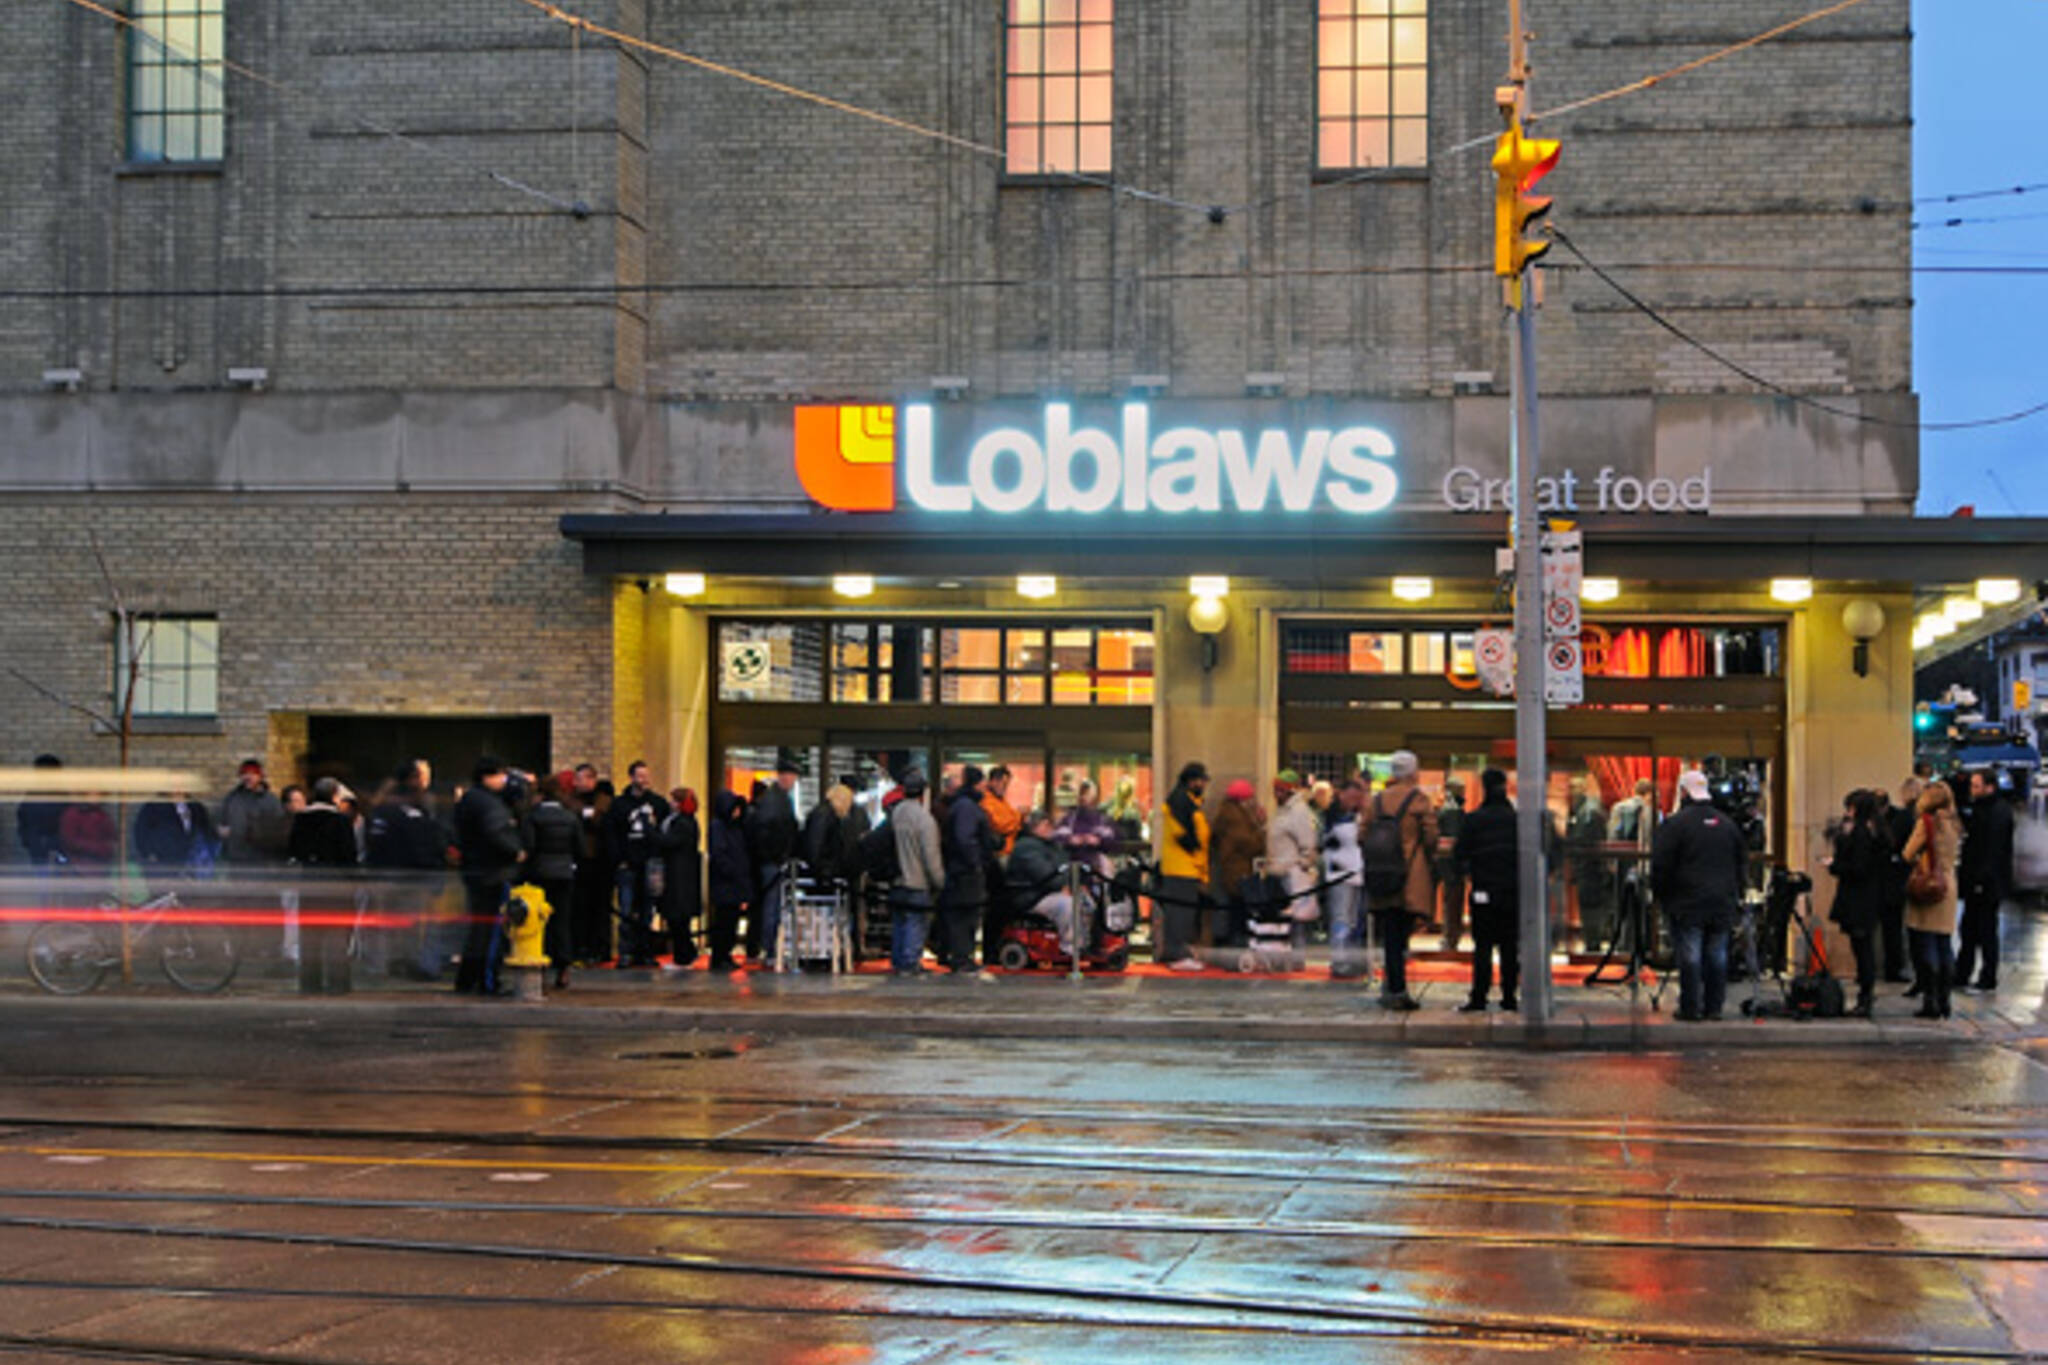 Lobaws food prices toronto